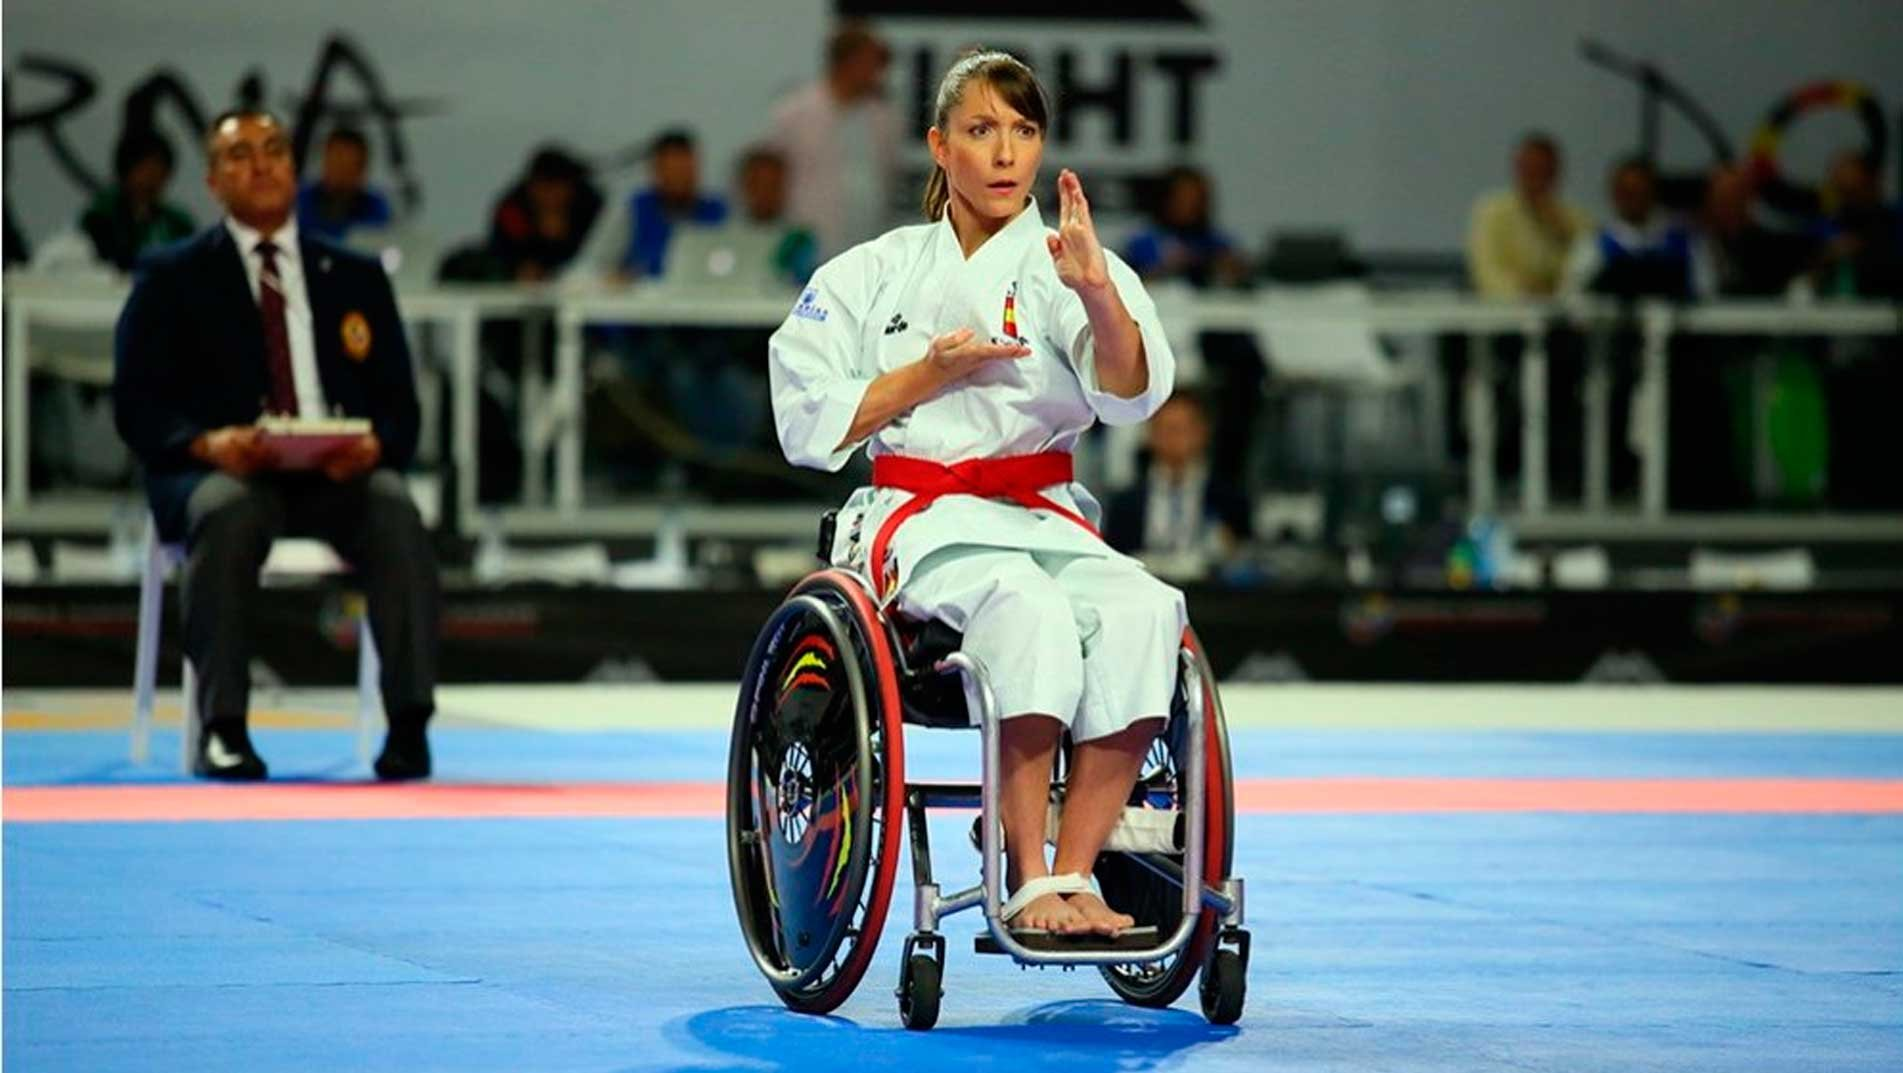 2018 Para-Karate World Championships take modality to new heights